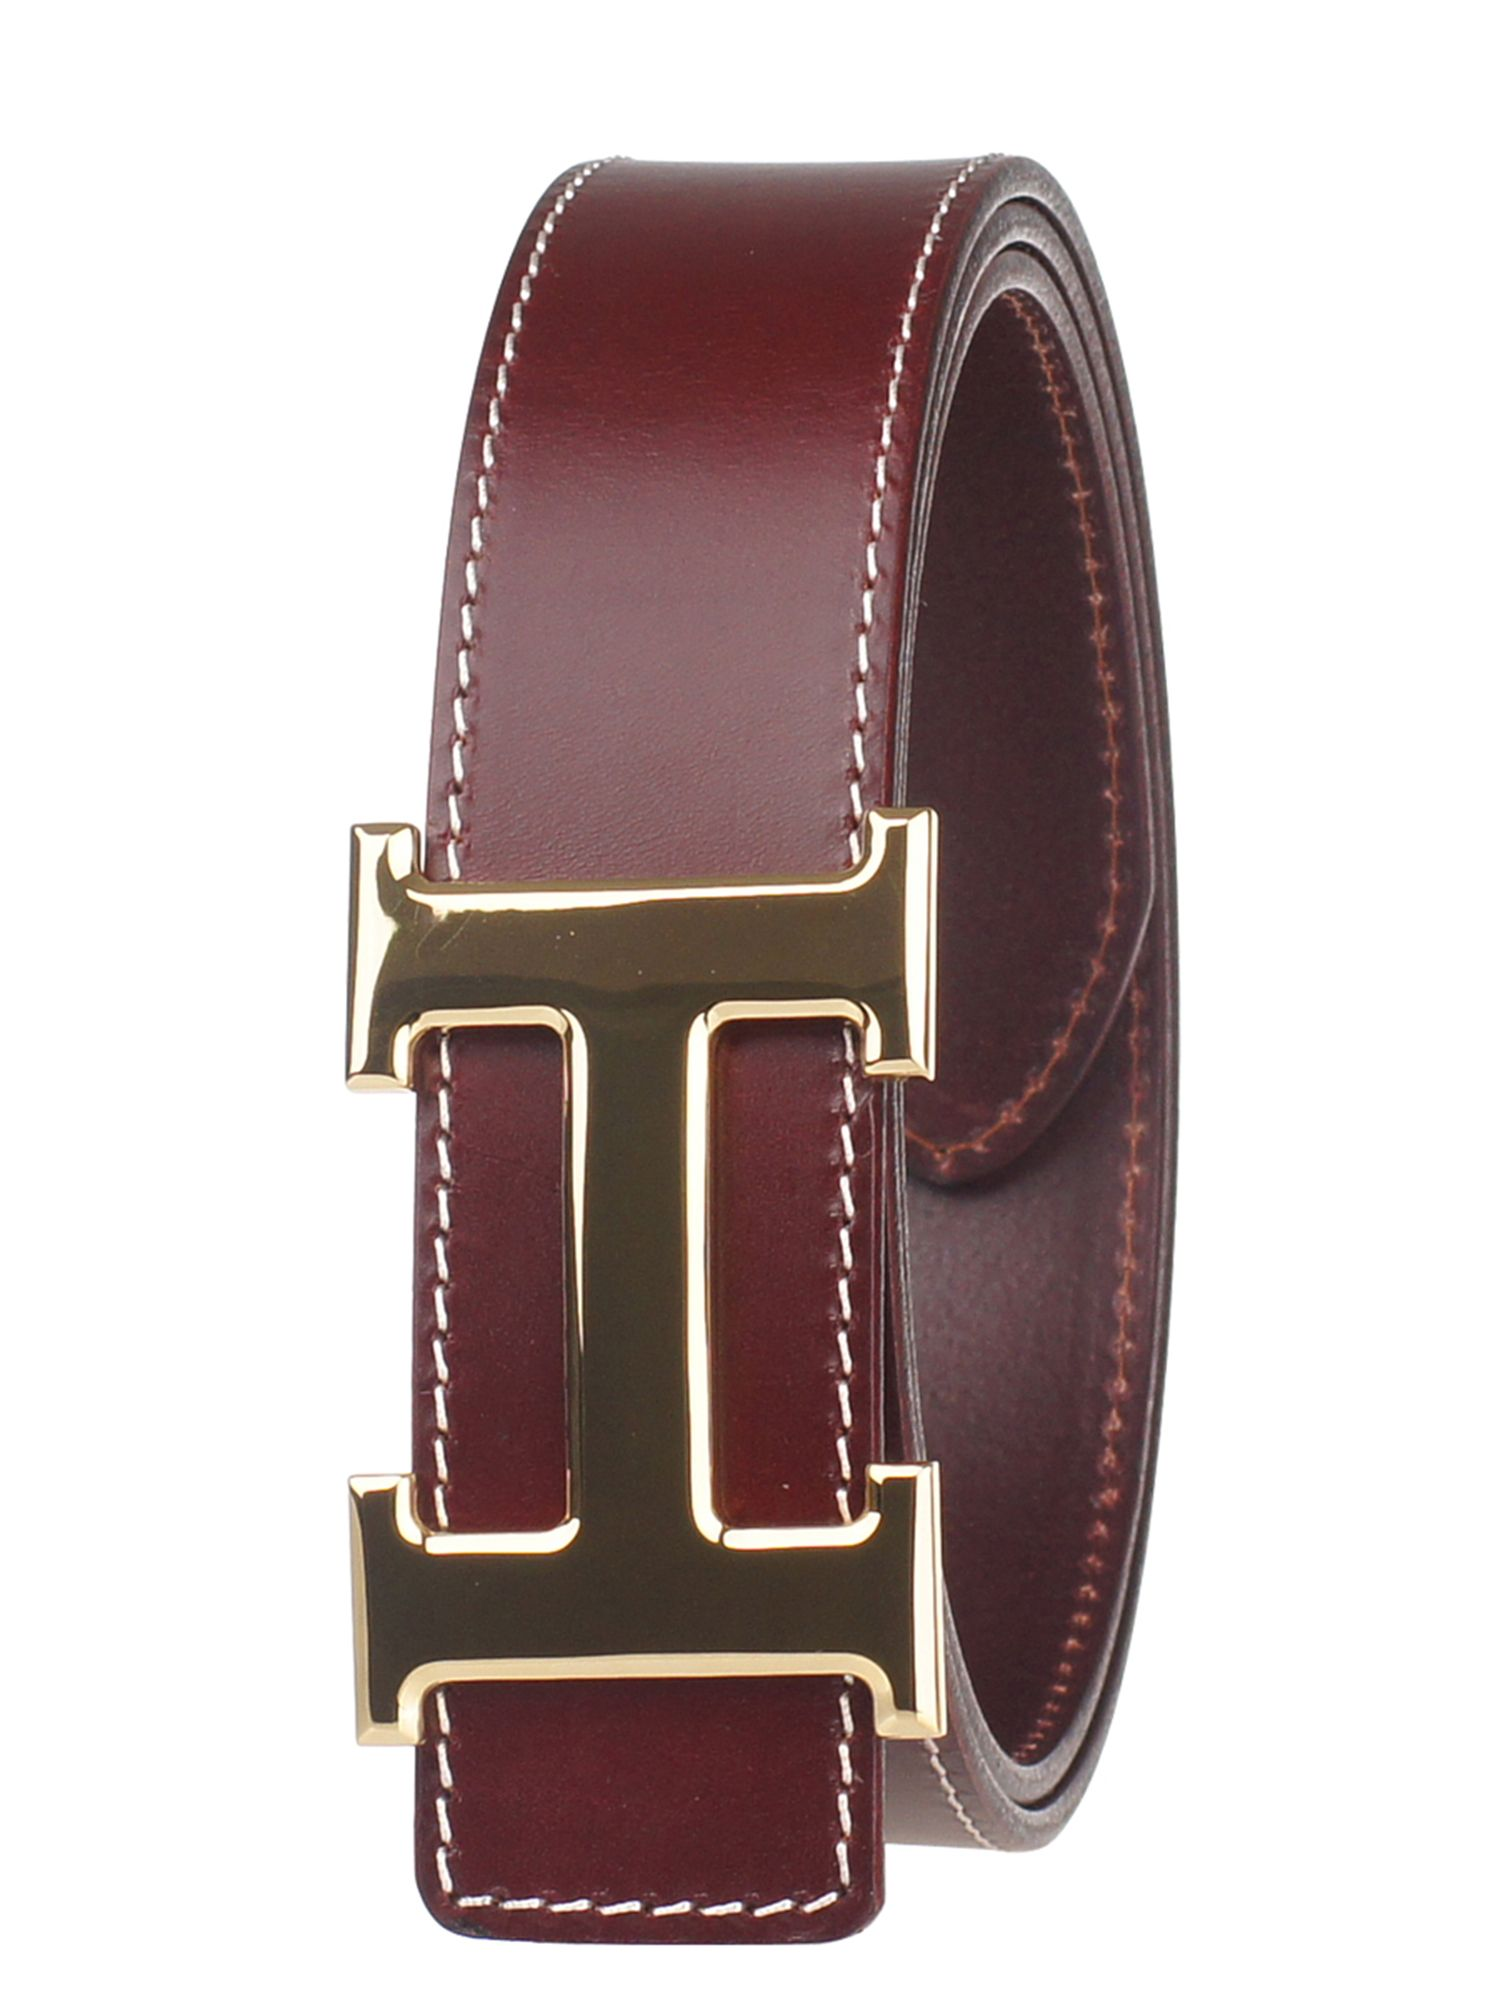 The world of brand's leather belts. Top brands in the